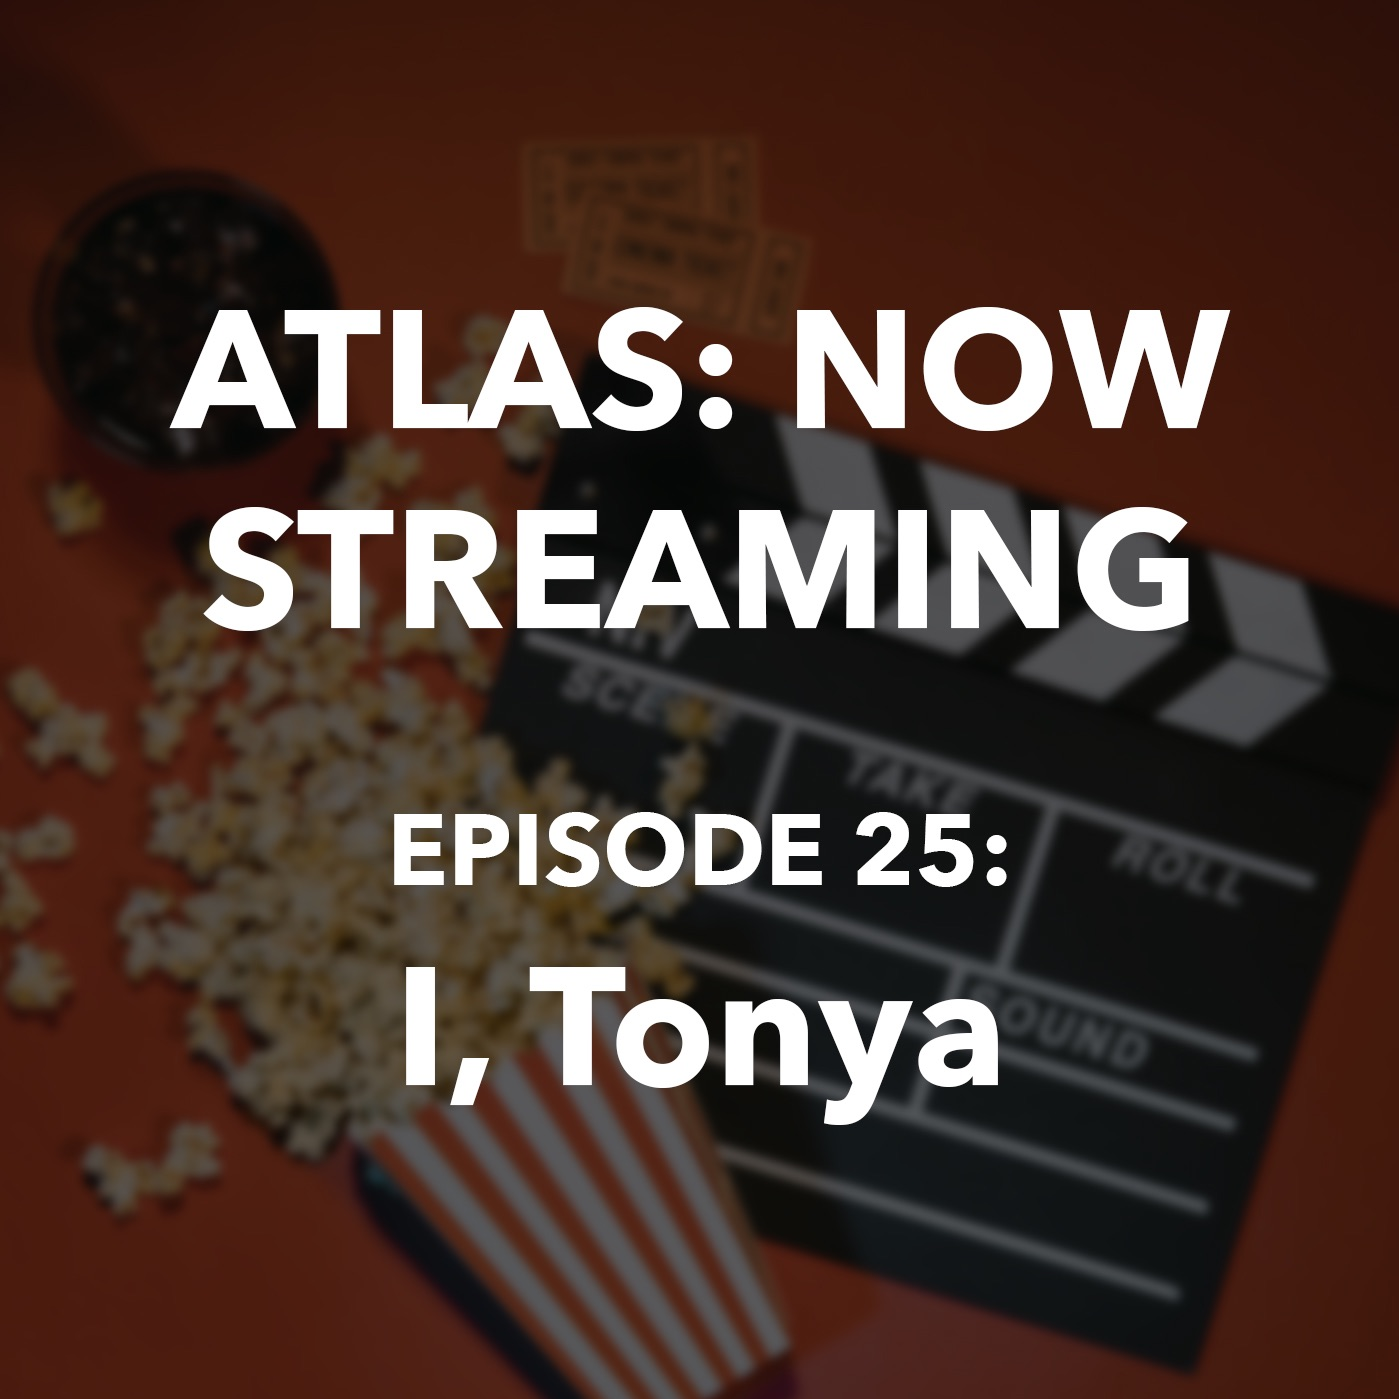 I, Tonya - Atlas: Now Streaming Ep 25